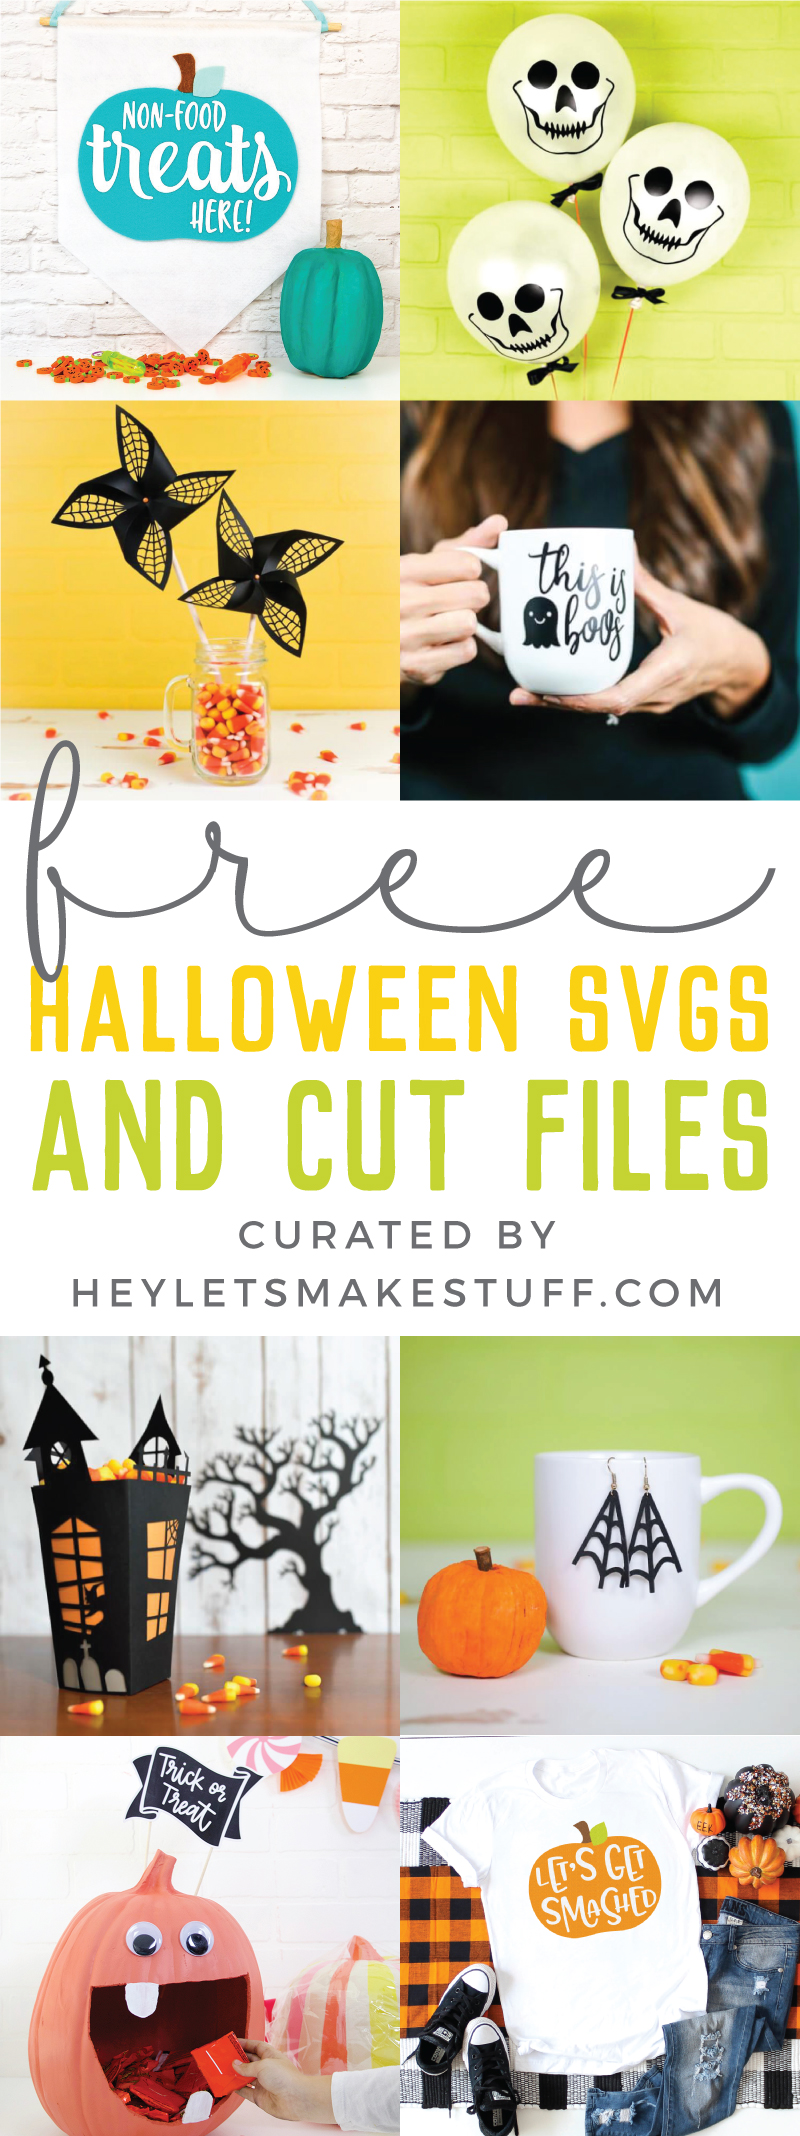 Spooky, ghoulish, silly or cutesy - whatever your Halloween style, this collection of Free Halloween SVGs and Cut Files is perfect for all your decorating and trick or treating plans. via @heyletsmakestuf